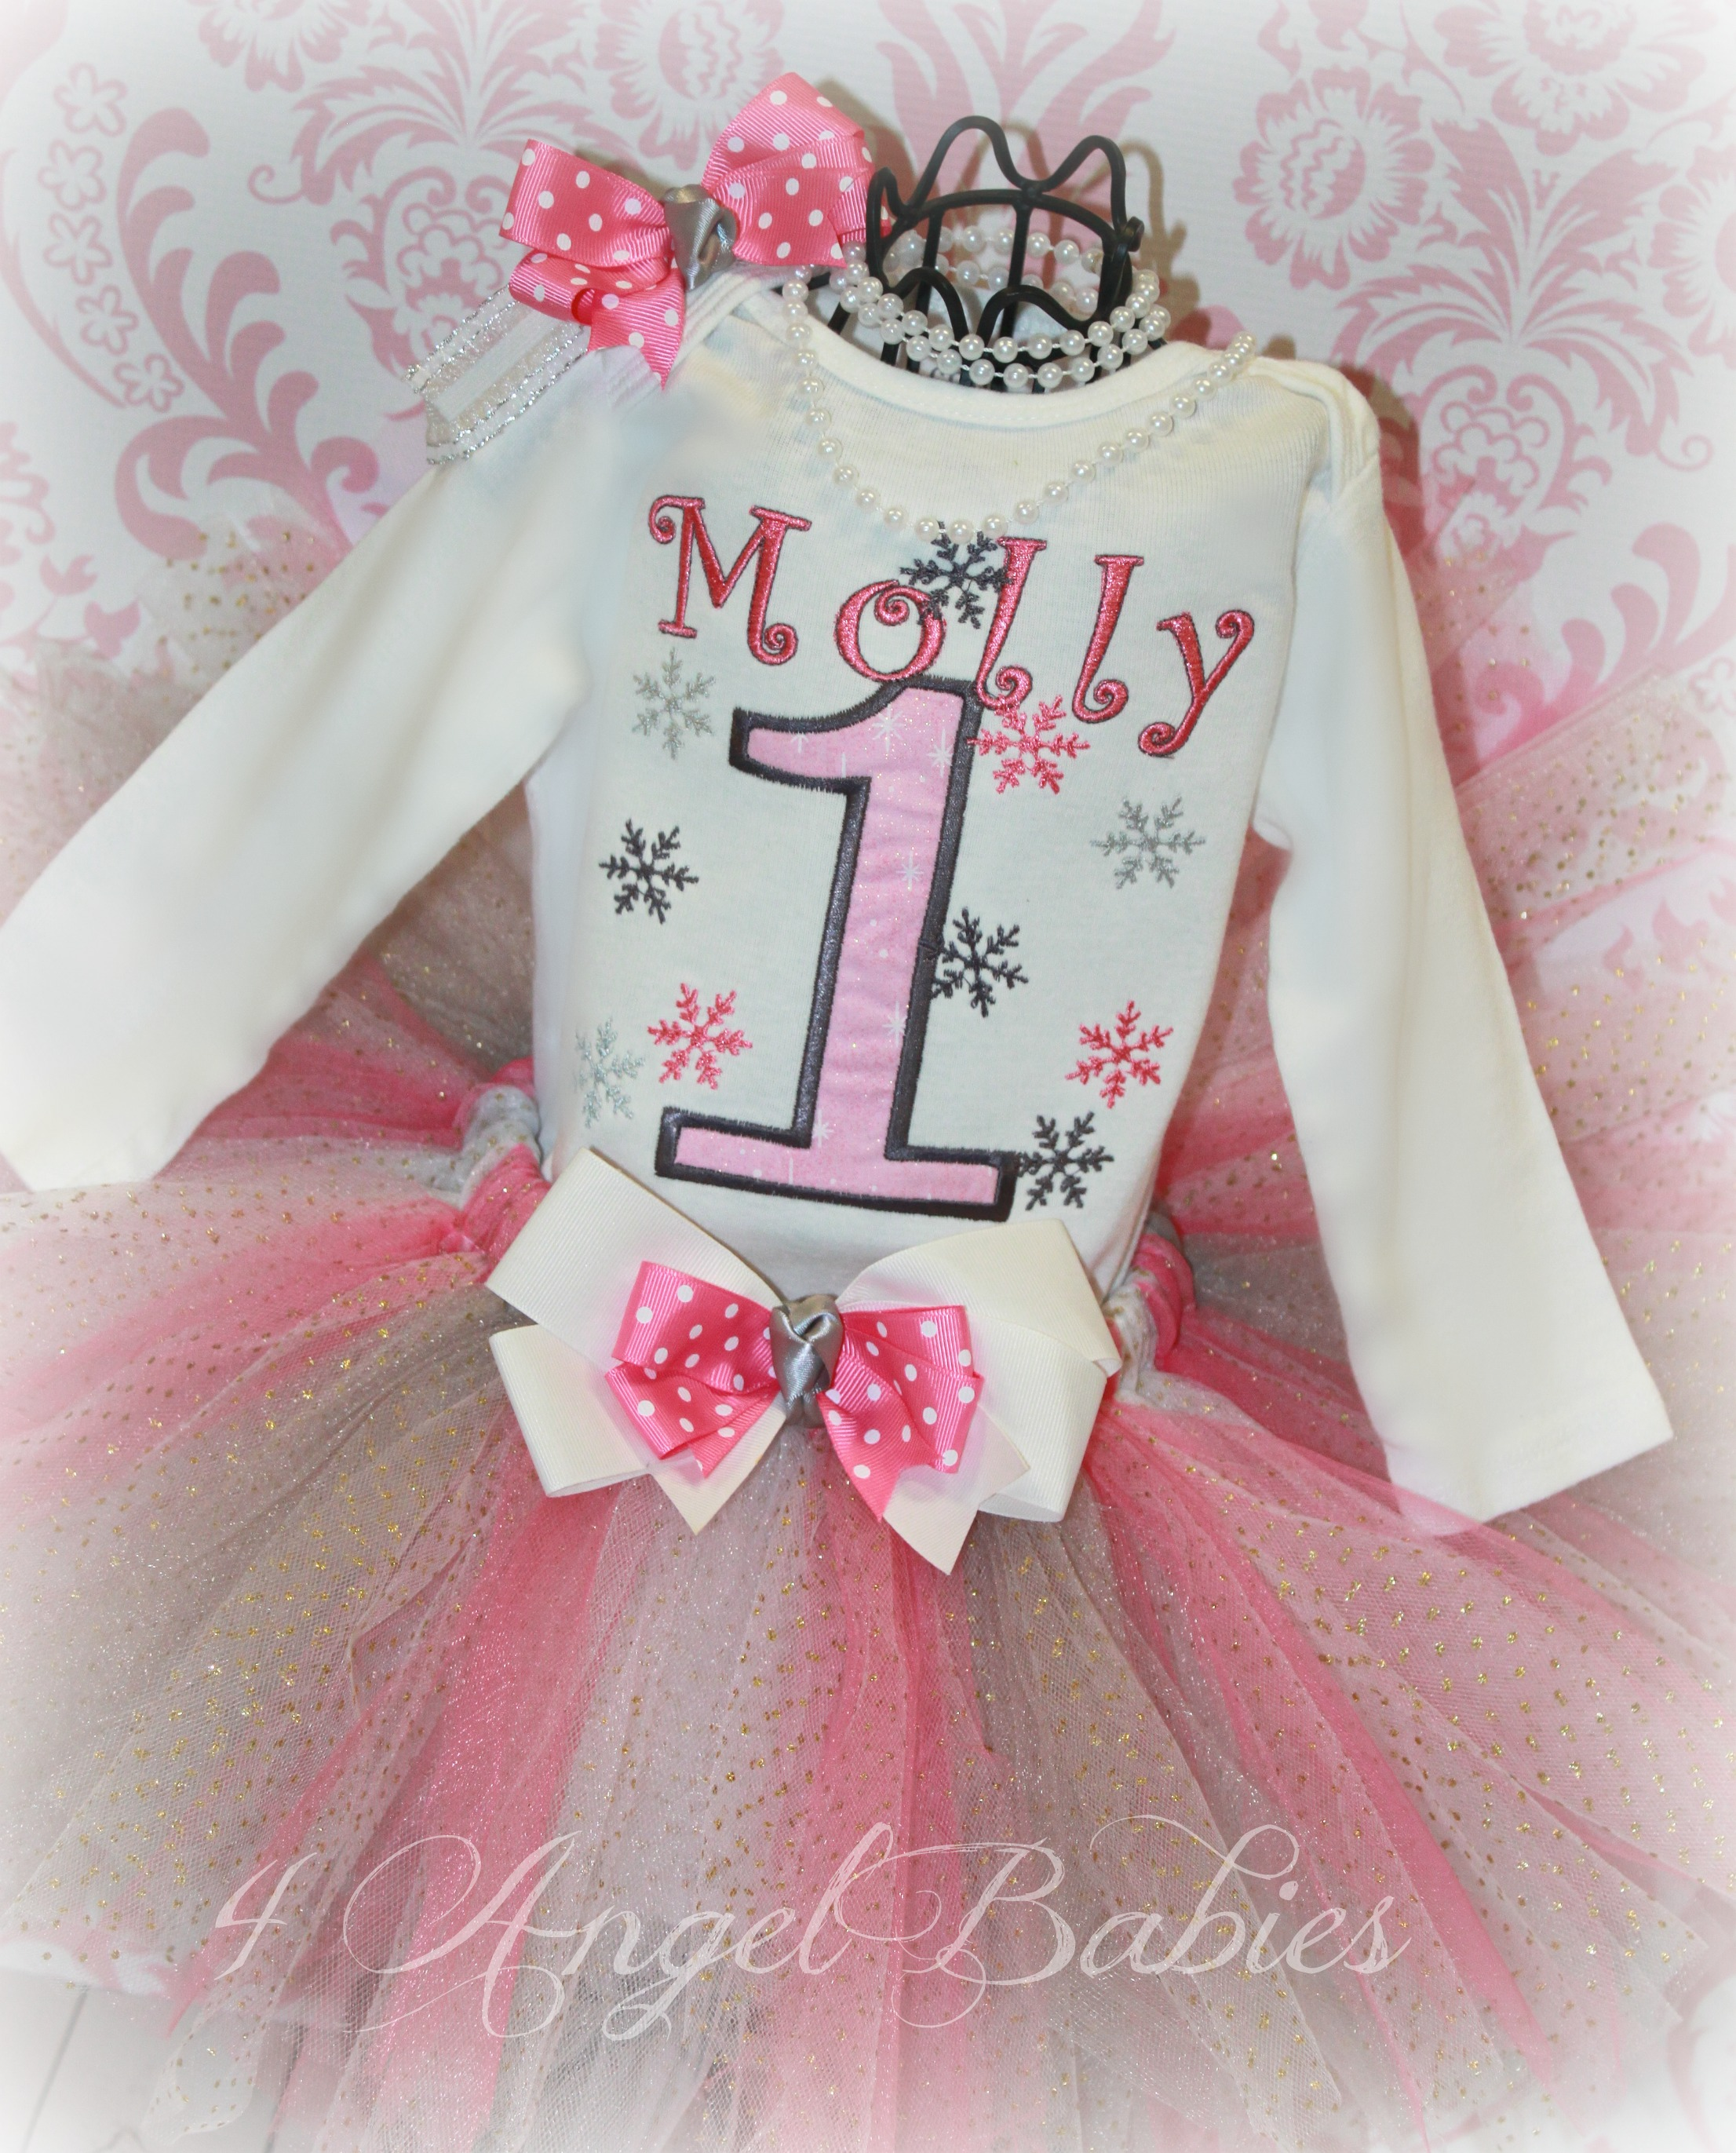 WINTER WONDERLAND Pink & Silver Snowflake Birthday Top or Shirt